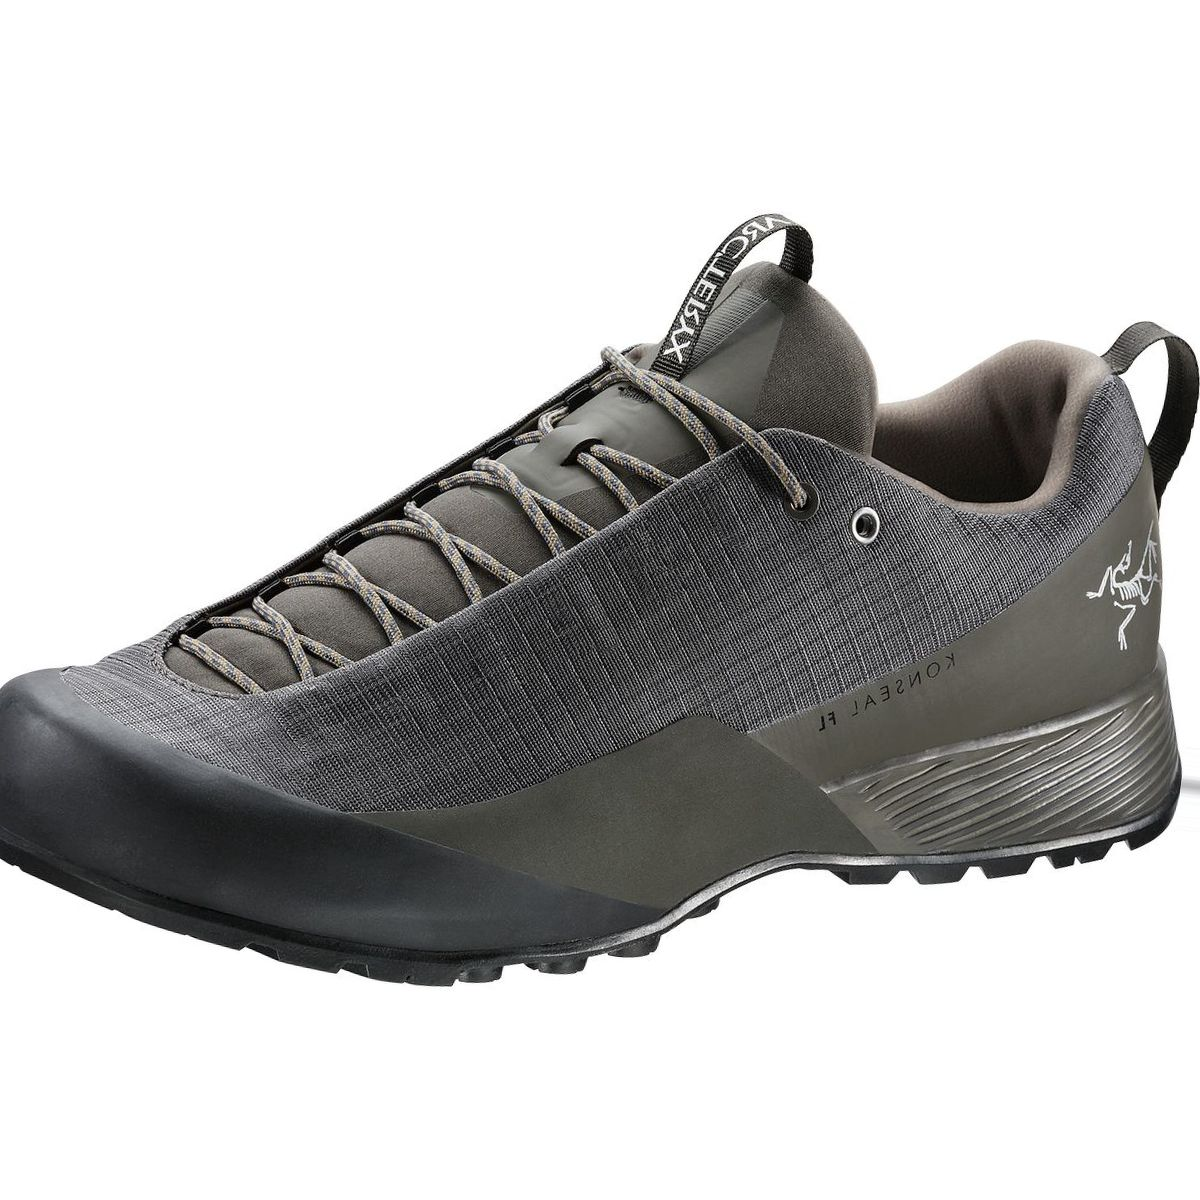 Arc'teryx Konseal FL Approach Shoe - Men's